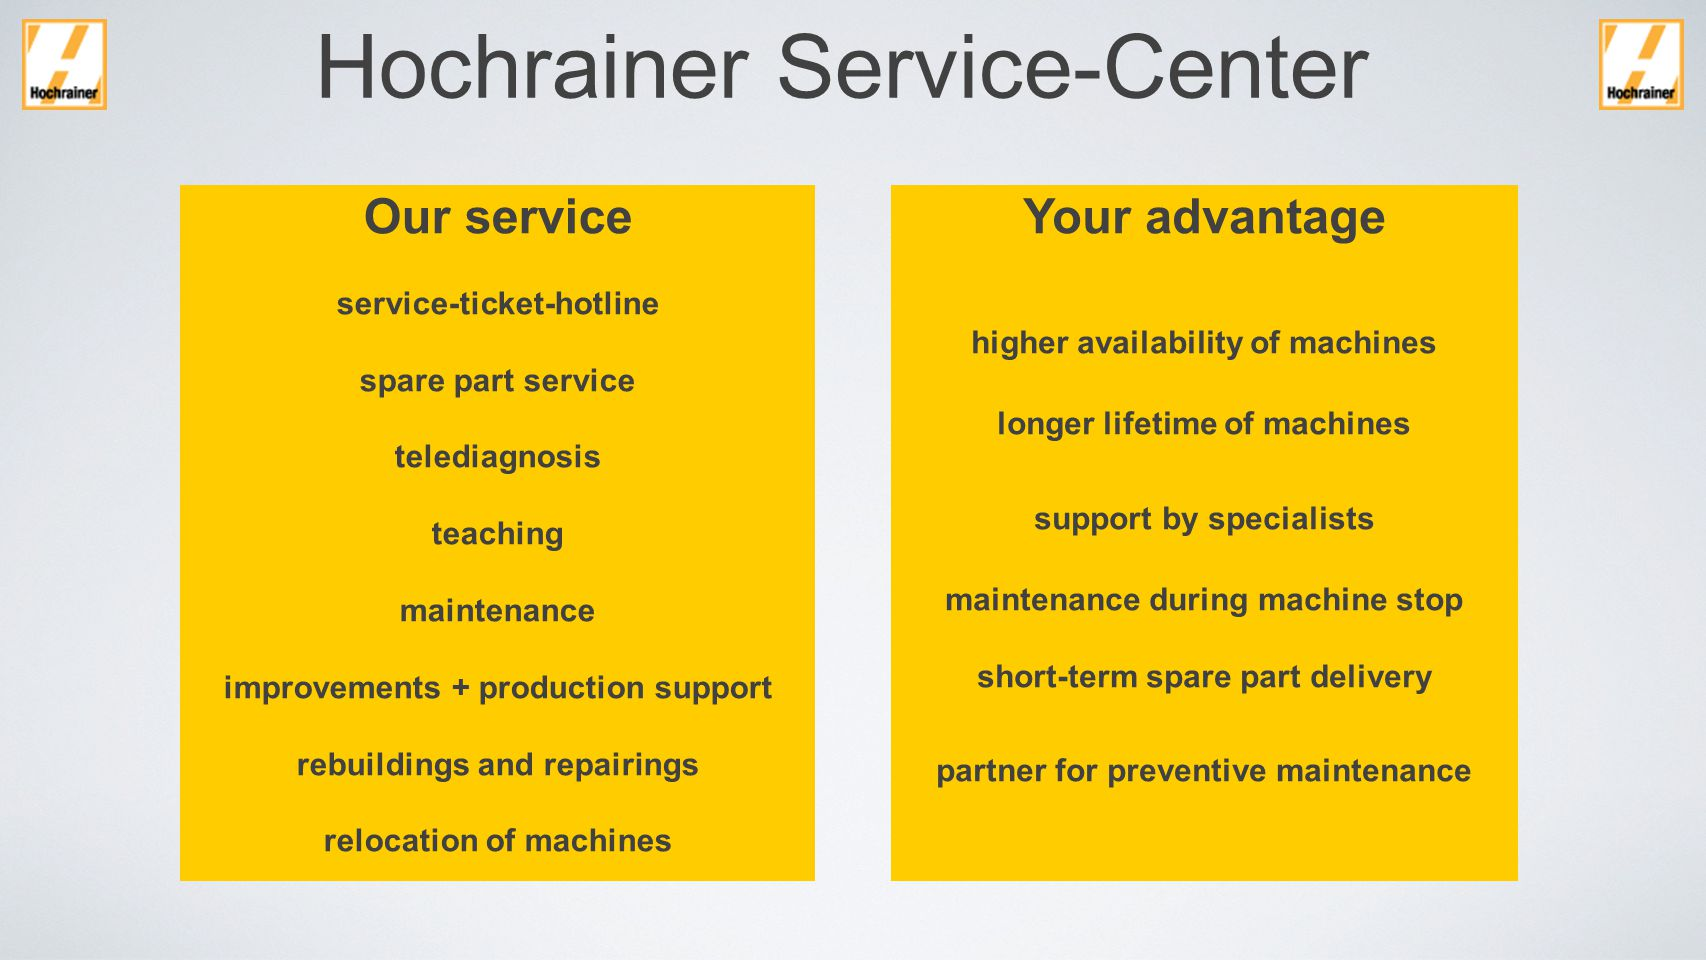 Hochrainer Service-Center Our service service-ticket-hotline spare part service telediagnosis teaching maintenance improvements + production support rebuildings and repairings relocation of machines Your advantage higher availability of machines longer lifetime of machines support by specialists maintenance during machine stop short-term spare part delivery partner for preventive maintenance